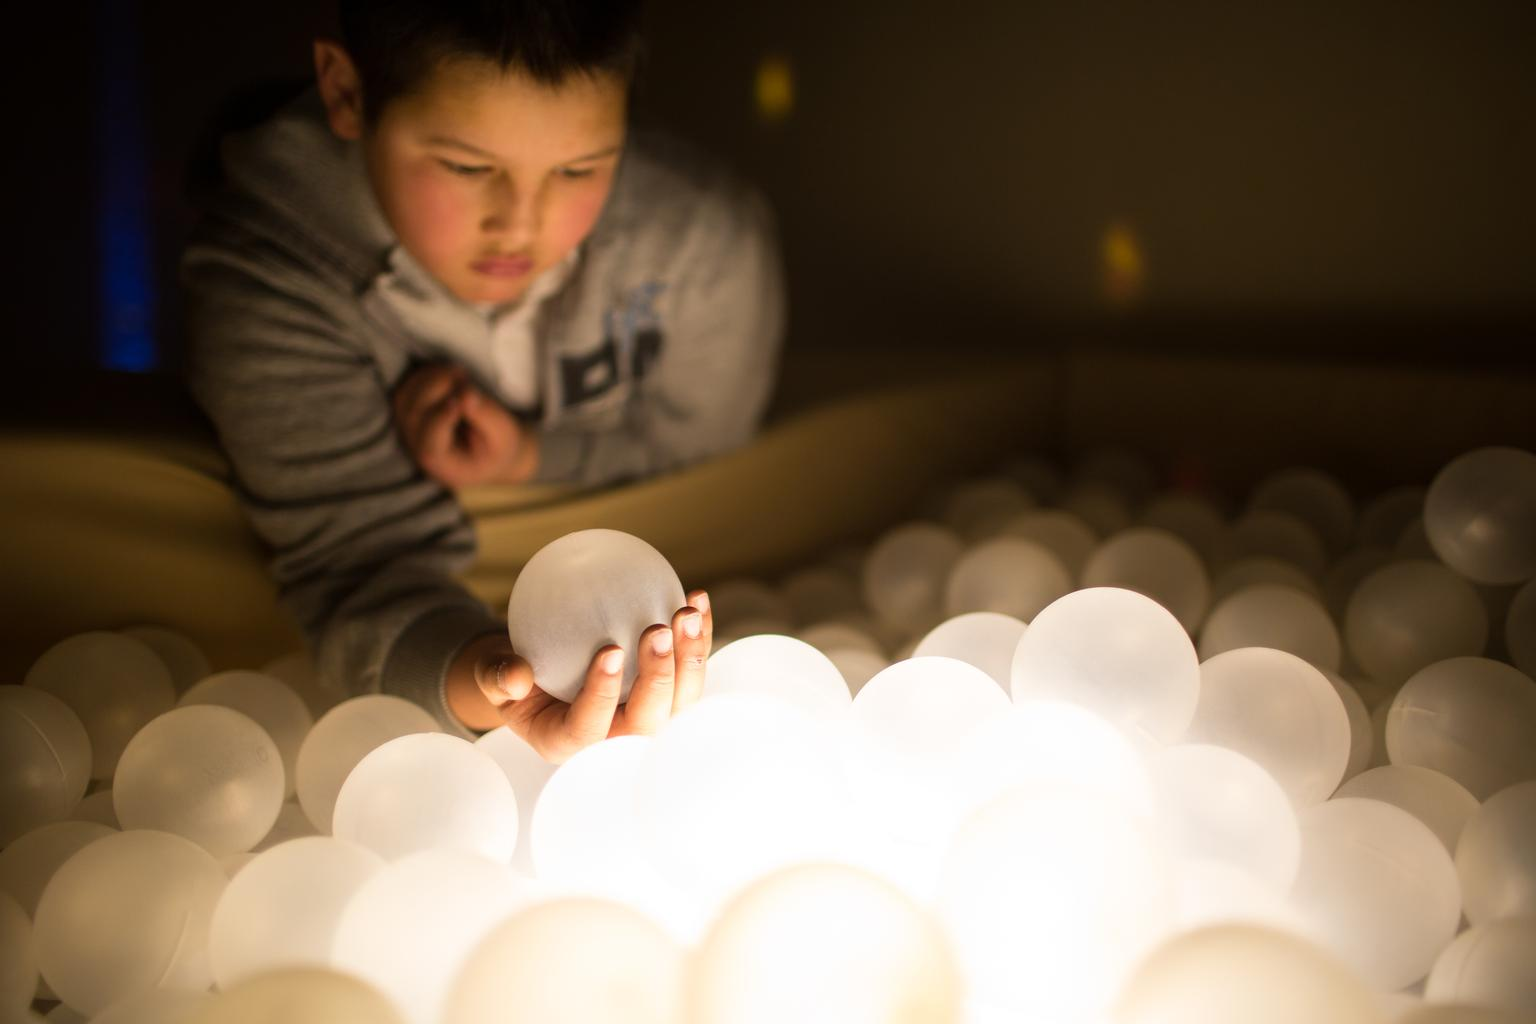 A boy holds a white translucent rubber ball in his hand as he looks at other similar glowing orbs in a box inside a dimly lit room.